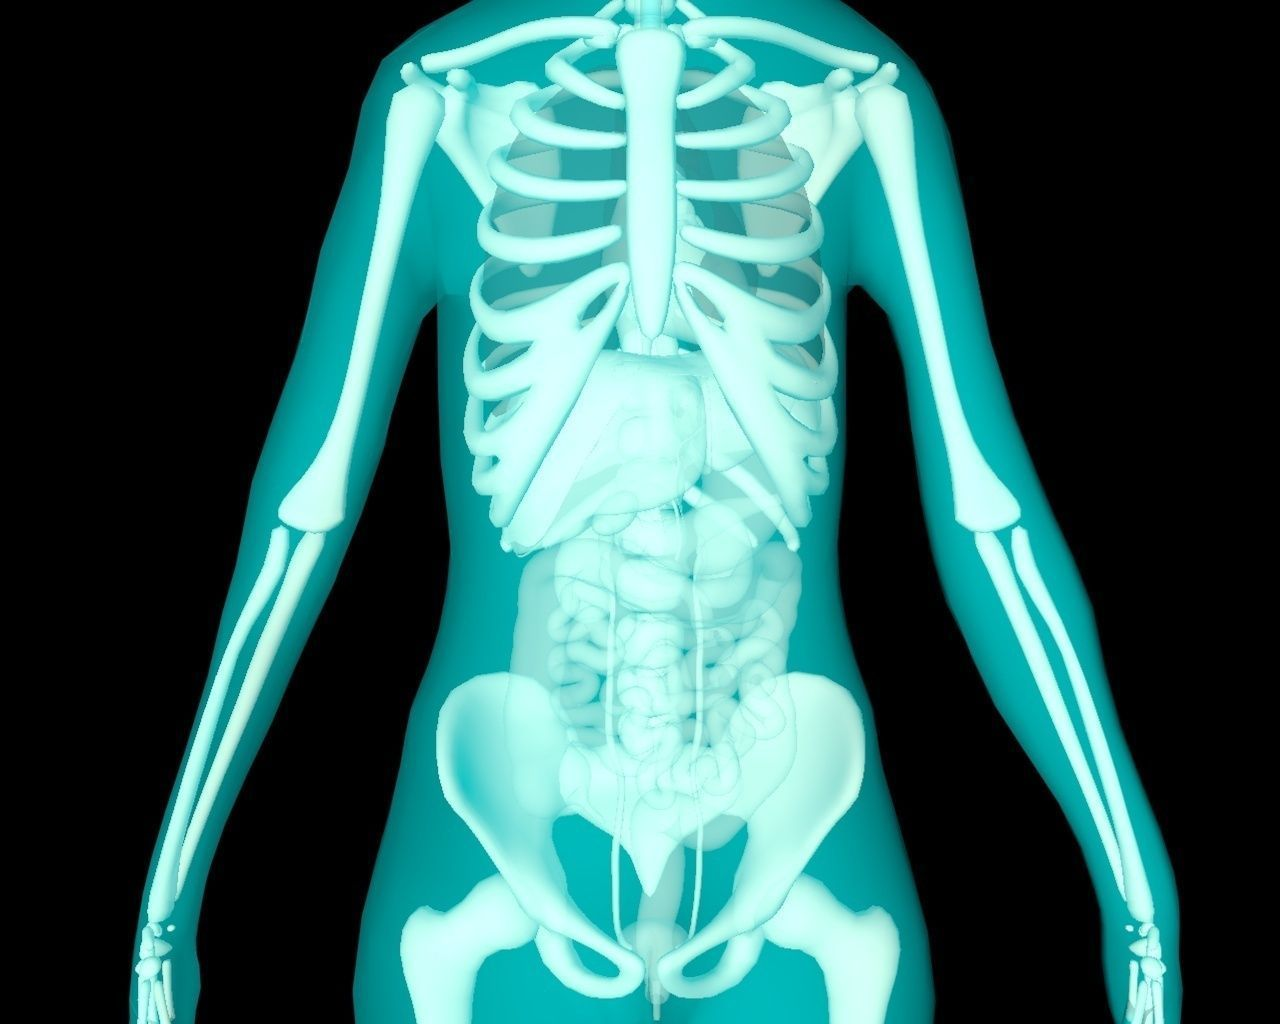 Xray Thorax and abdomen with internal organs